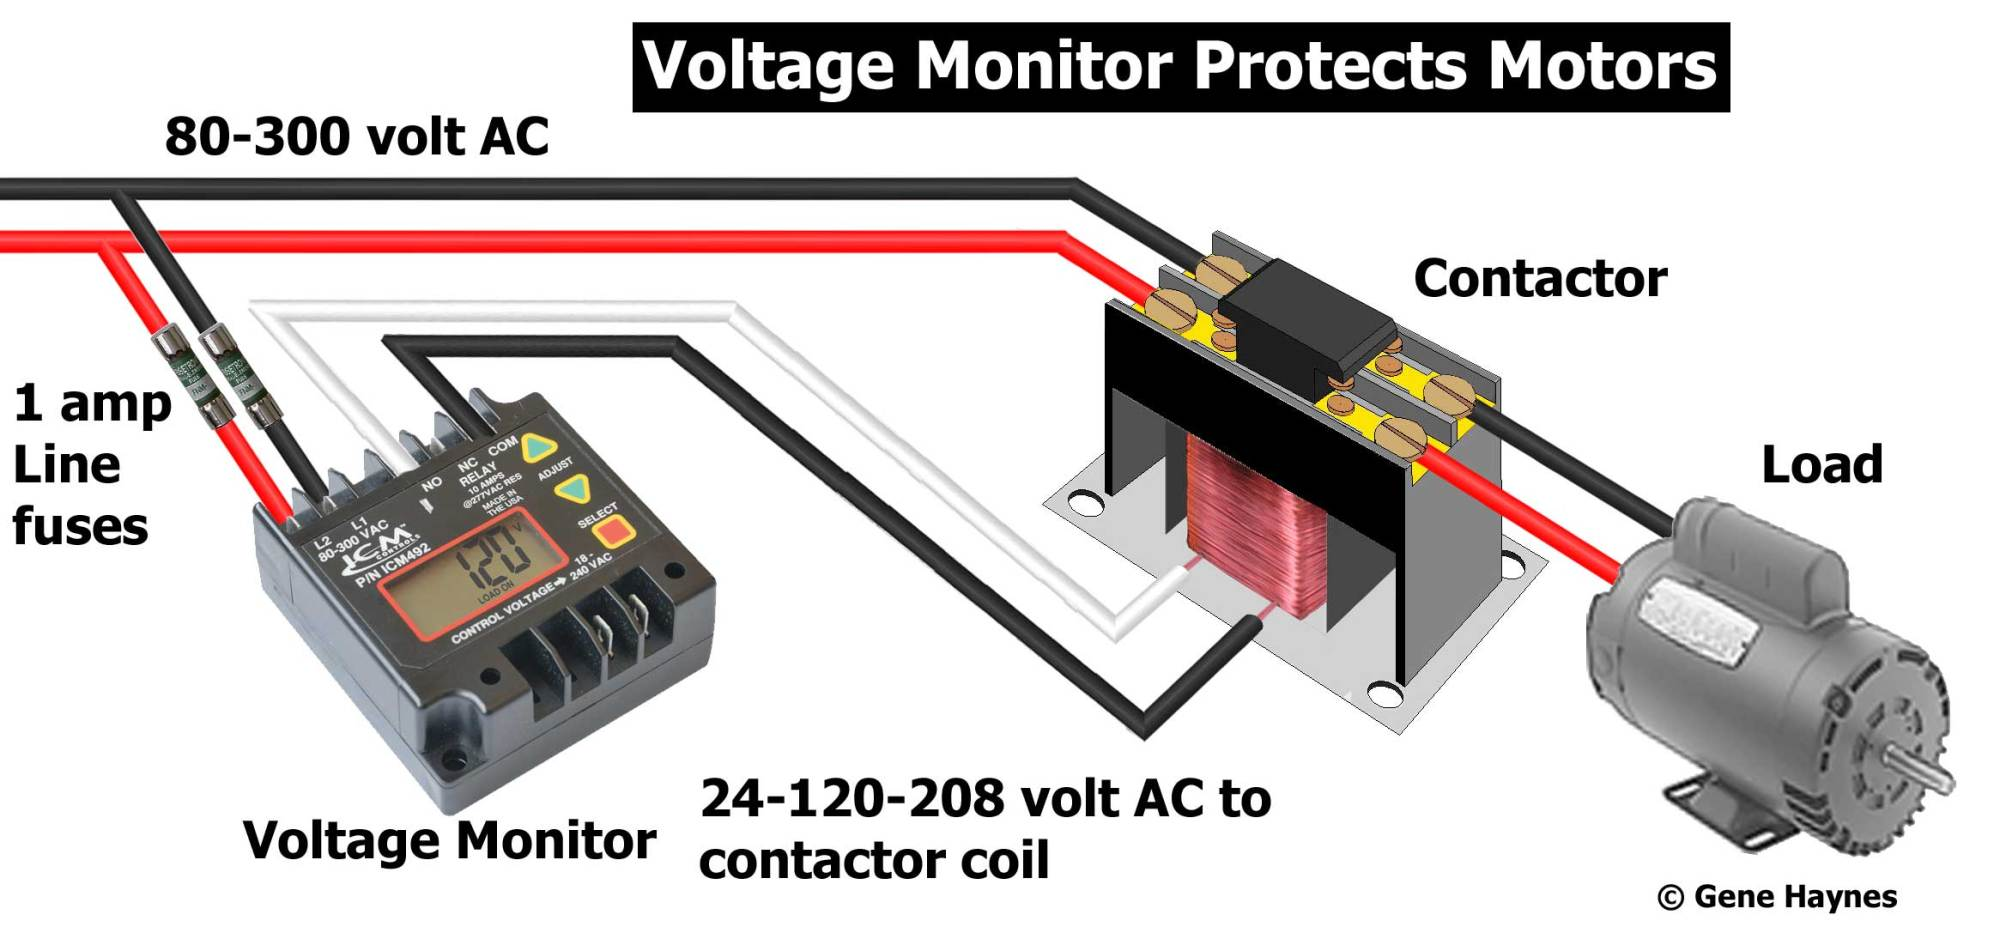 hight resolution of household power 120 240 volt is single phase voltage monitor protect motors and equipment